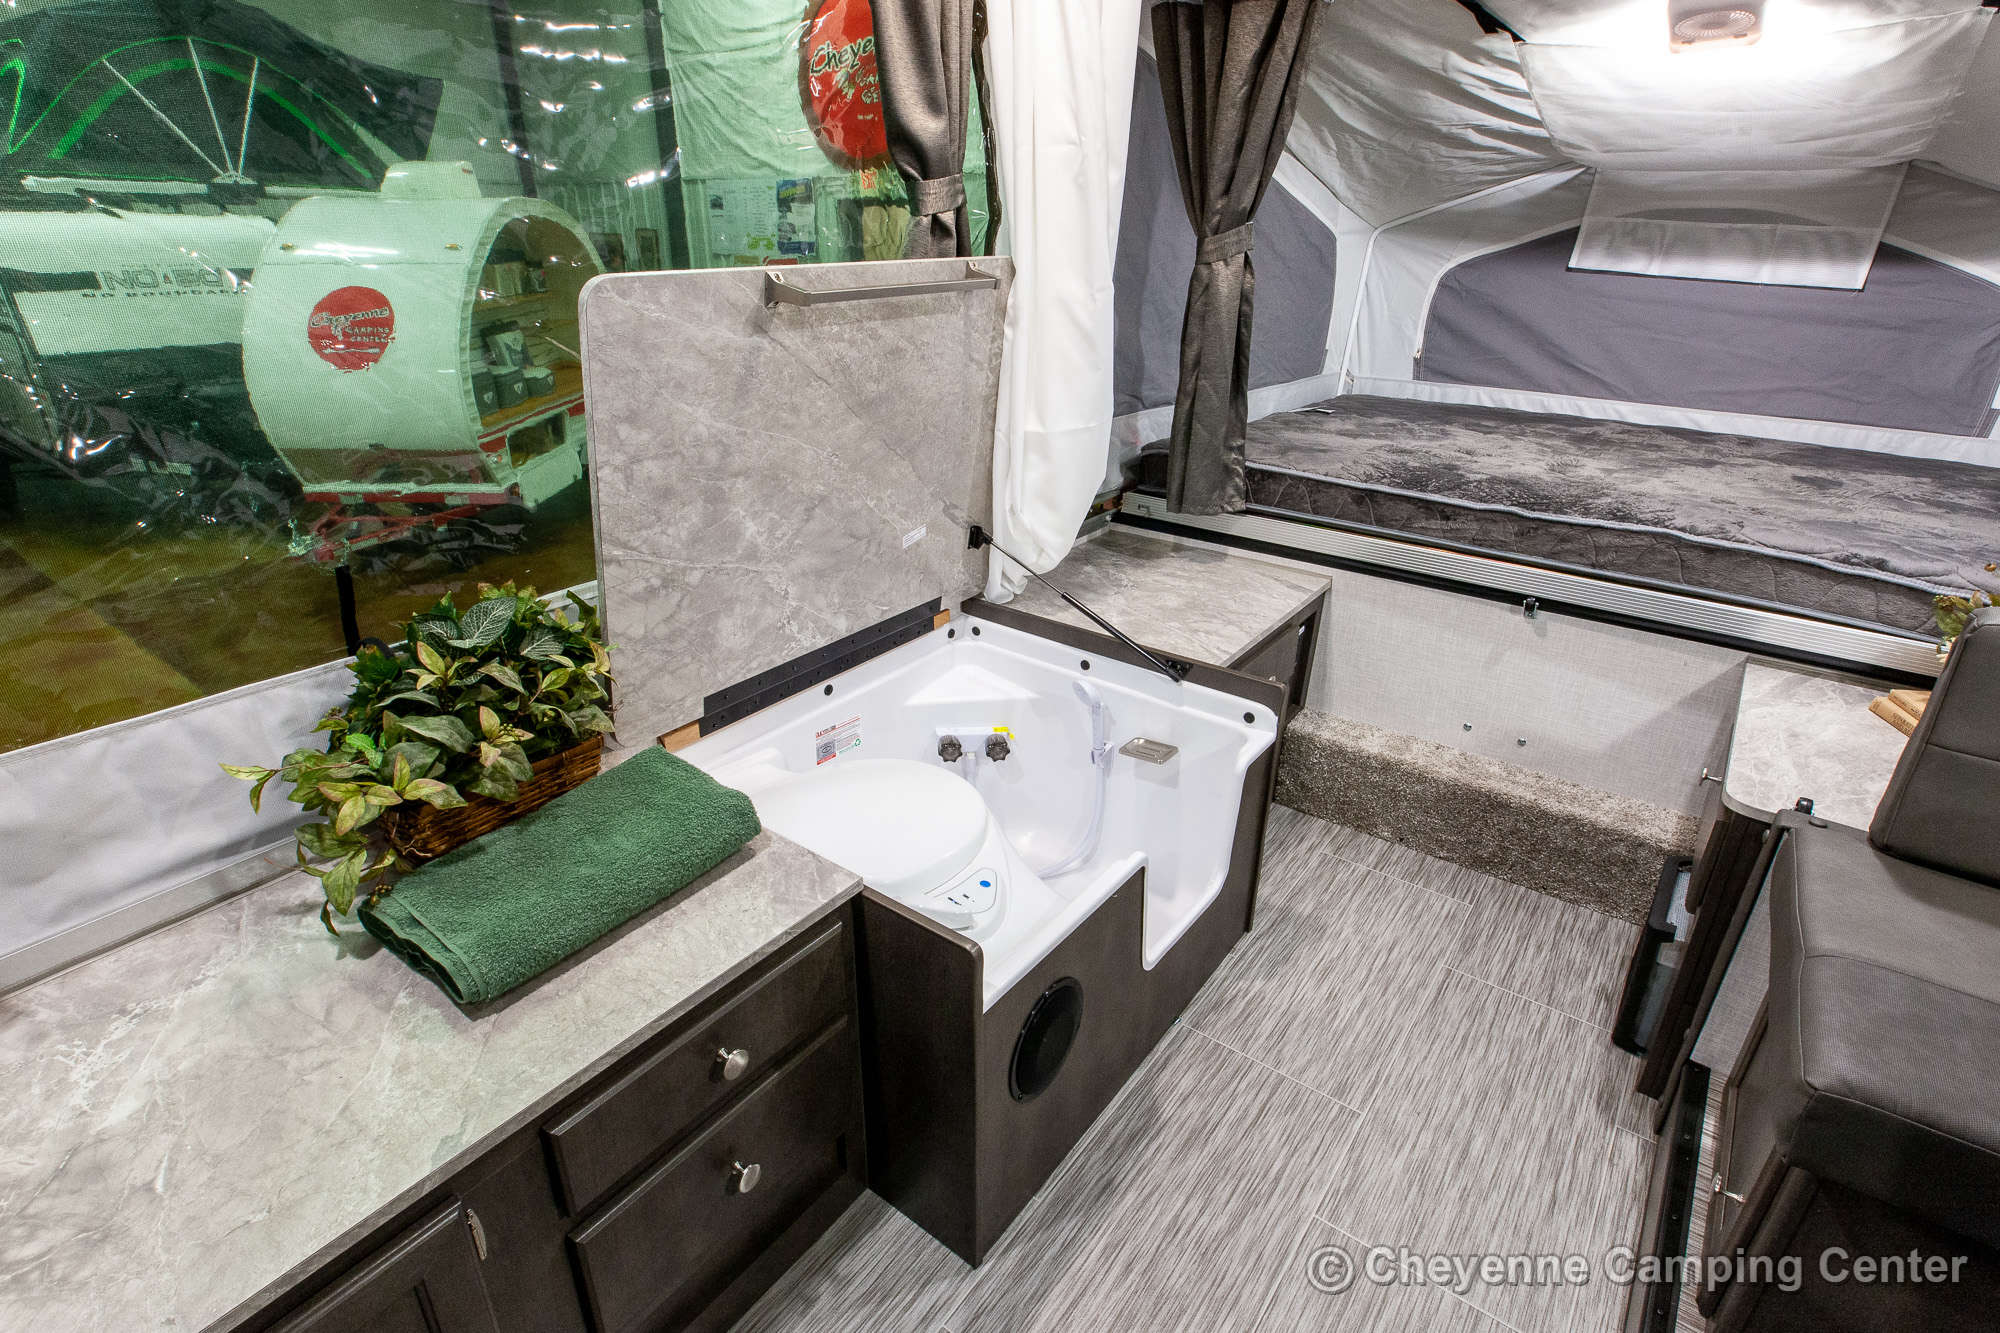 2021 Forest River Flagstaff Sports Enthusiast 23SCSE Toy Hauler Folding Camper Interior Image